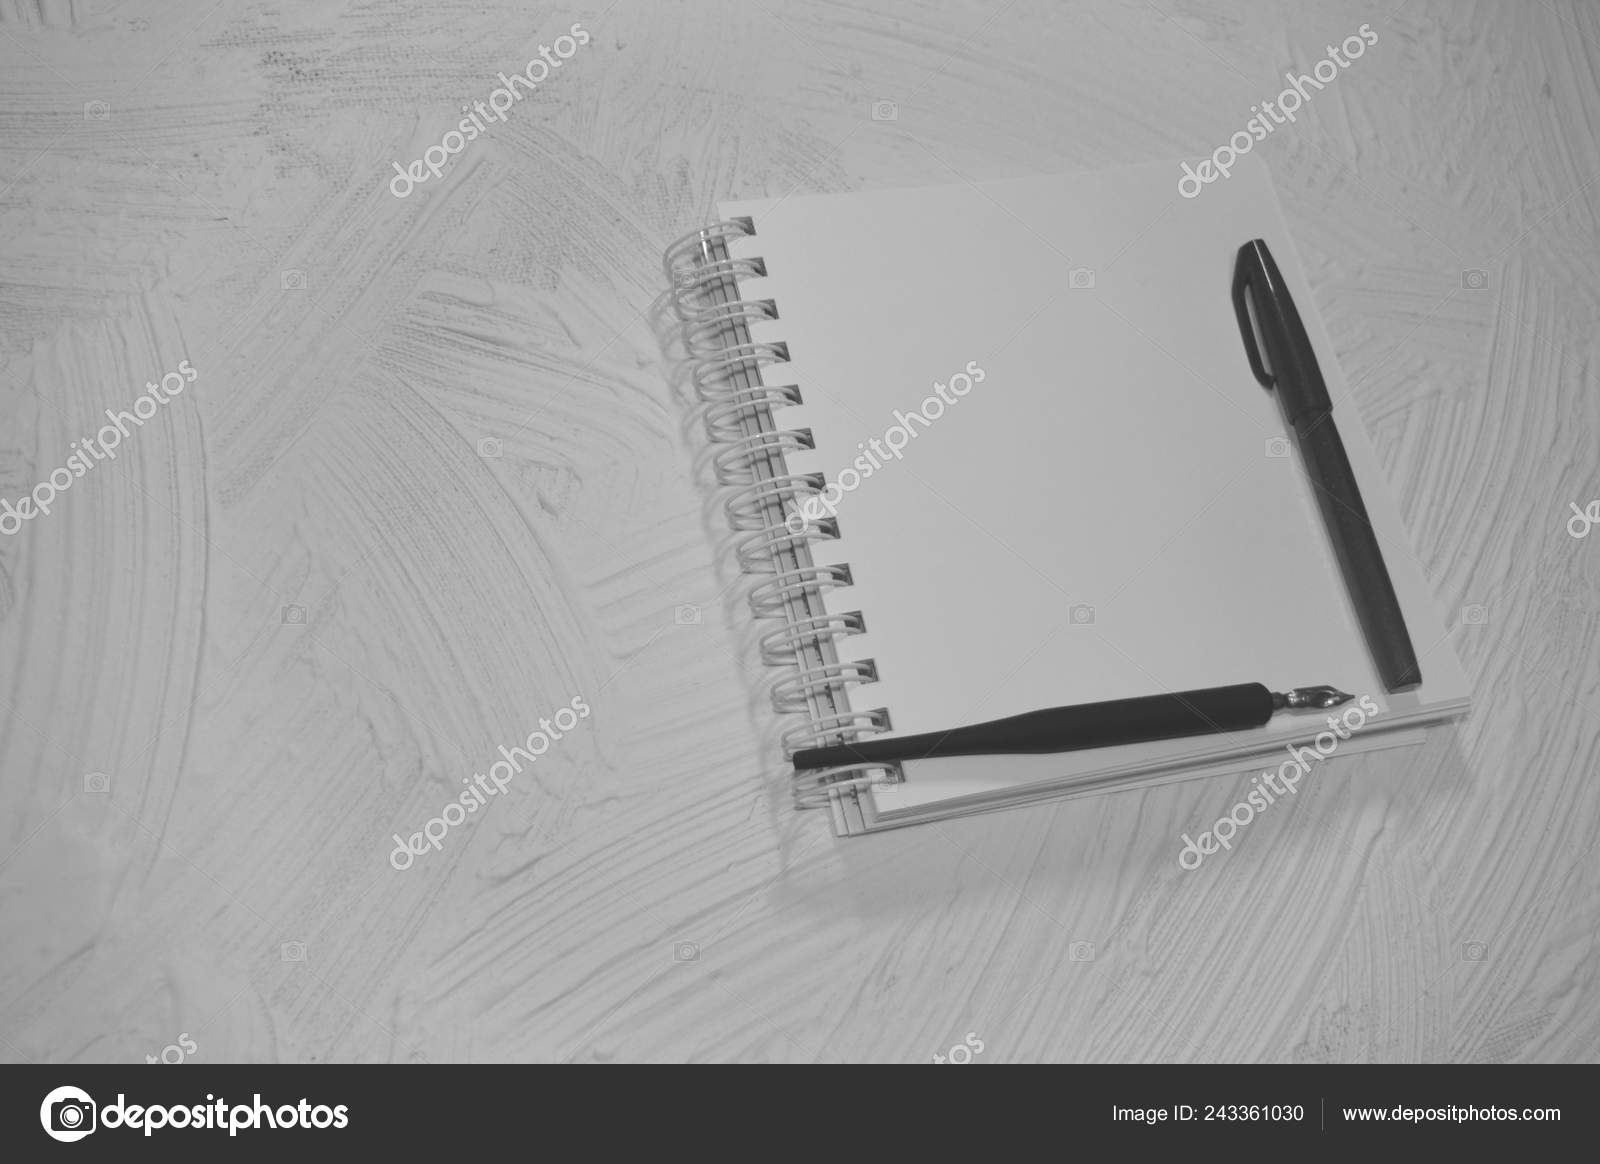 Notebook pen pencil drawing mock empty sketchbook black background